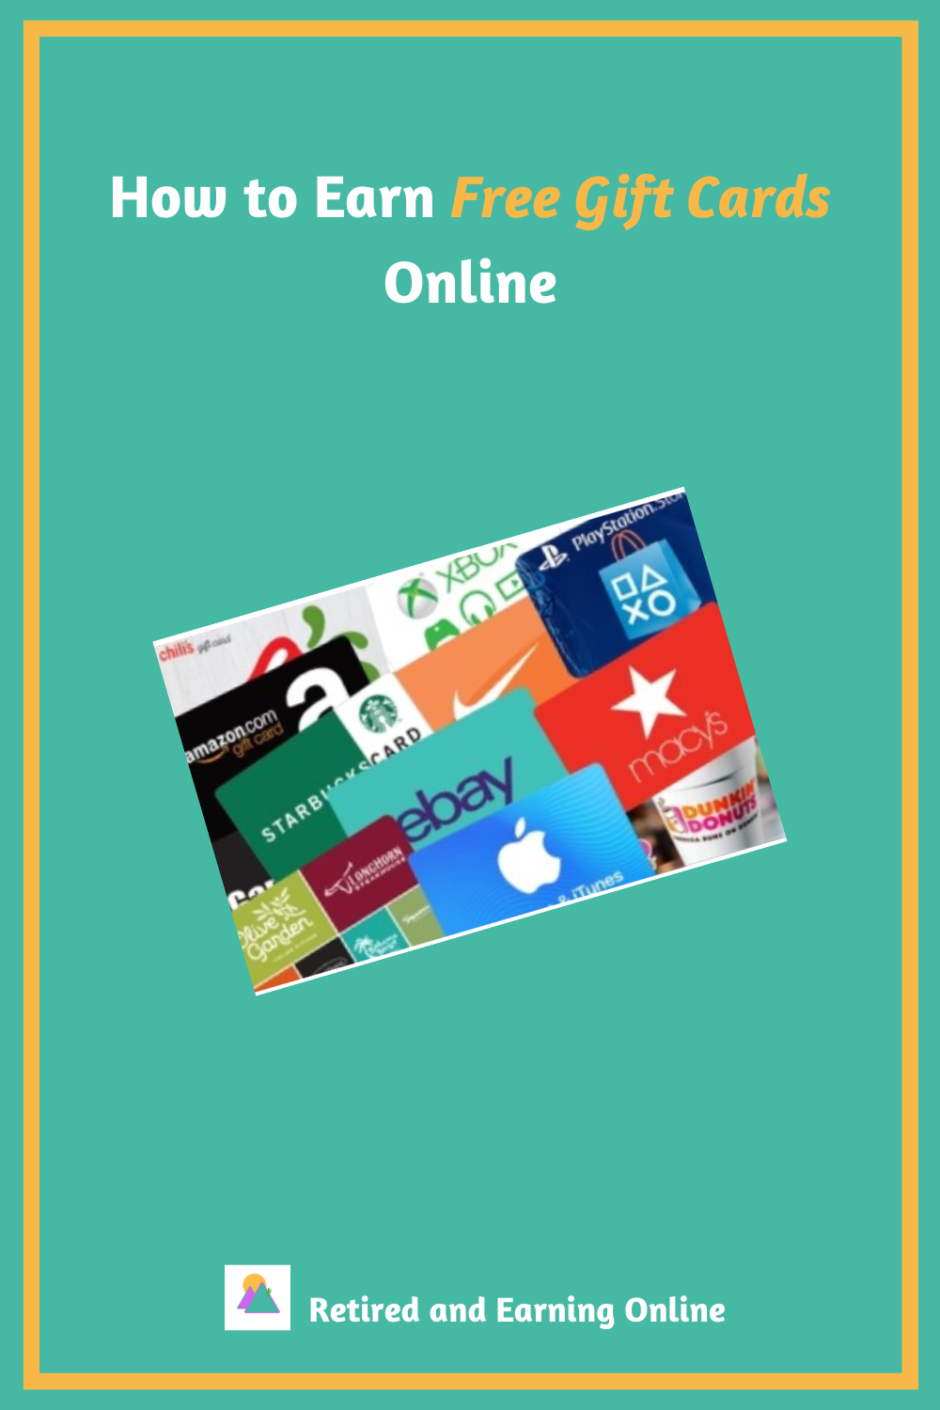 Pinterest Graphic - How to Earn Free Gift Cards Online